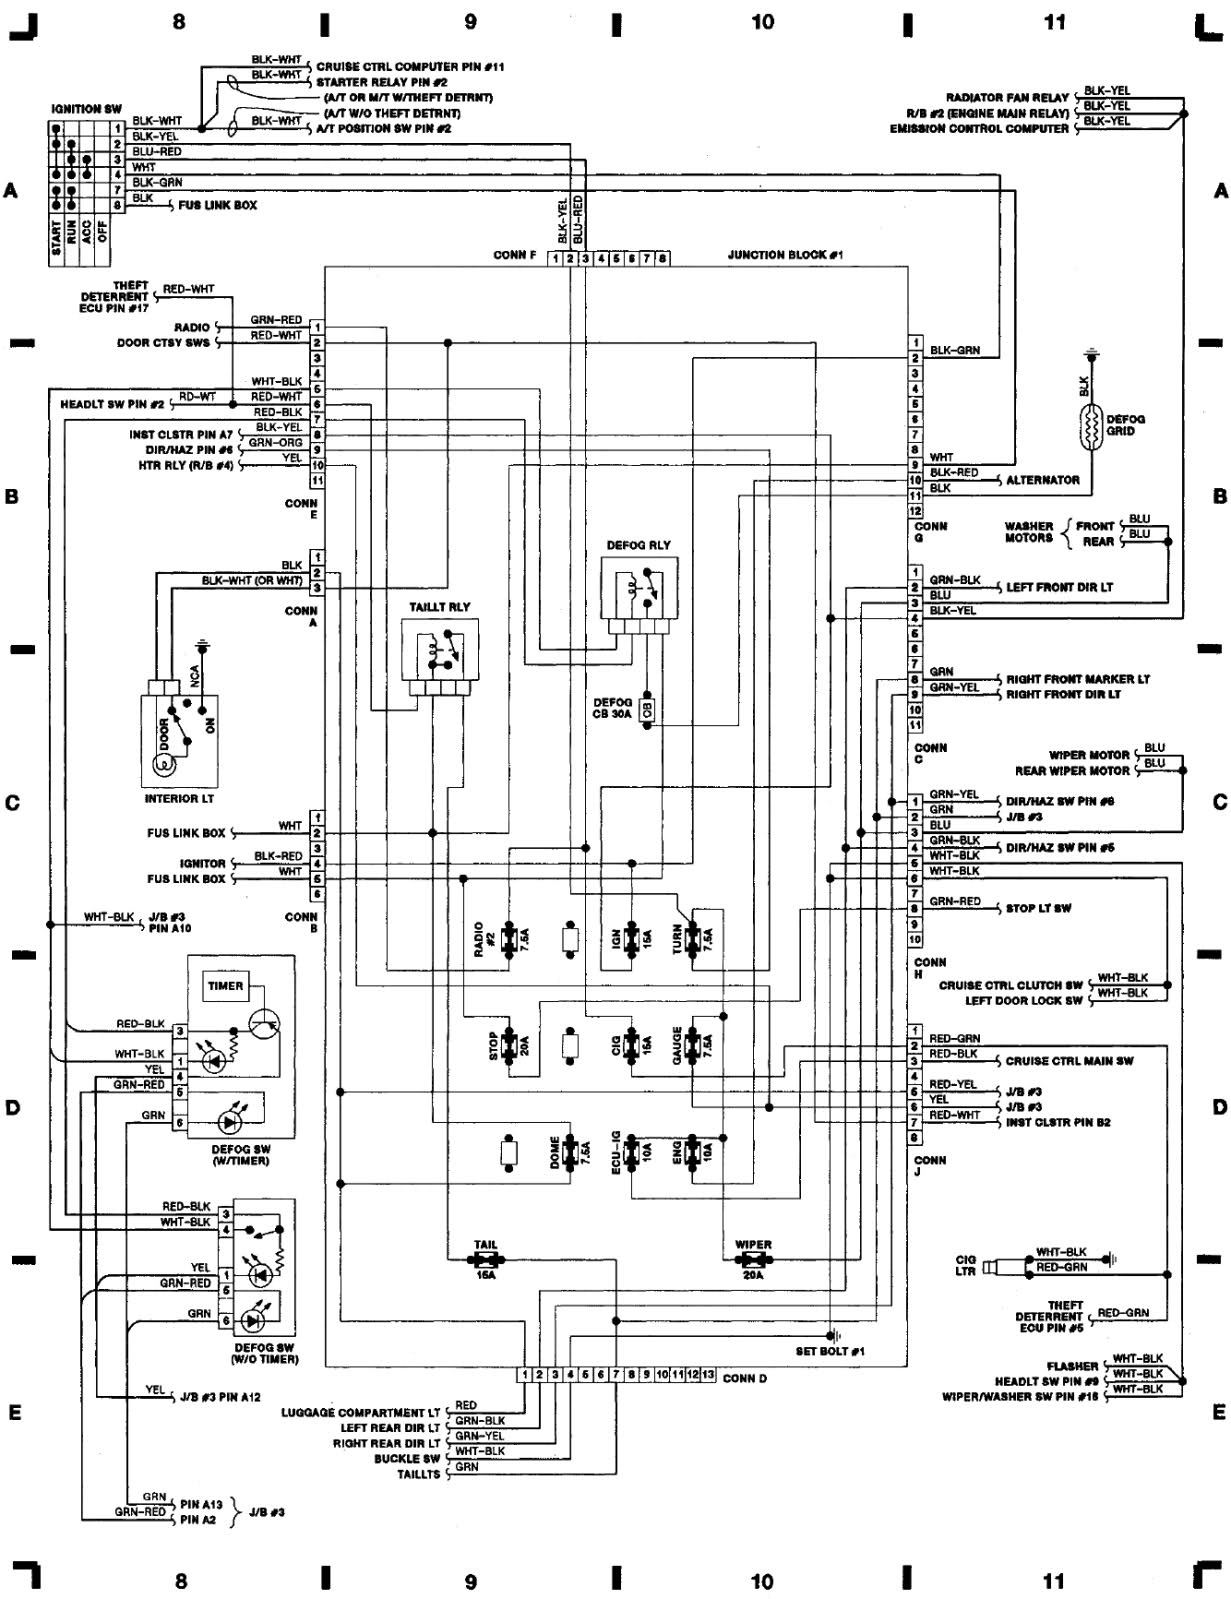 2000 toyota celica fuse box diagram gUMBNVL 2000 toyota celica fuse box diagram image details 2003 toyota celica fuse box location at bakdesigns.co